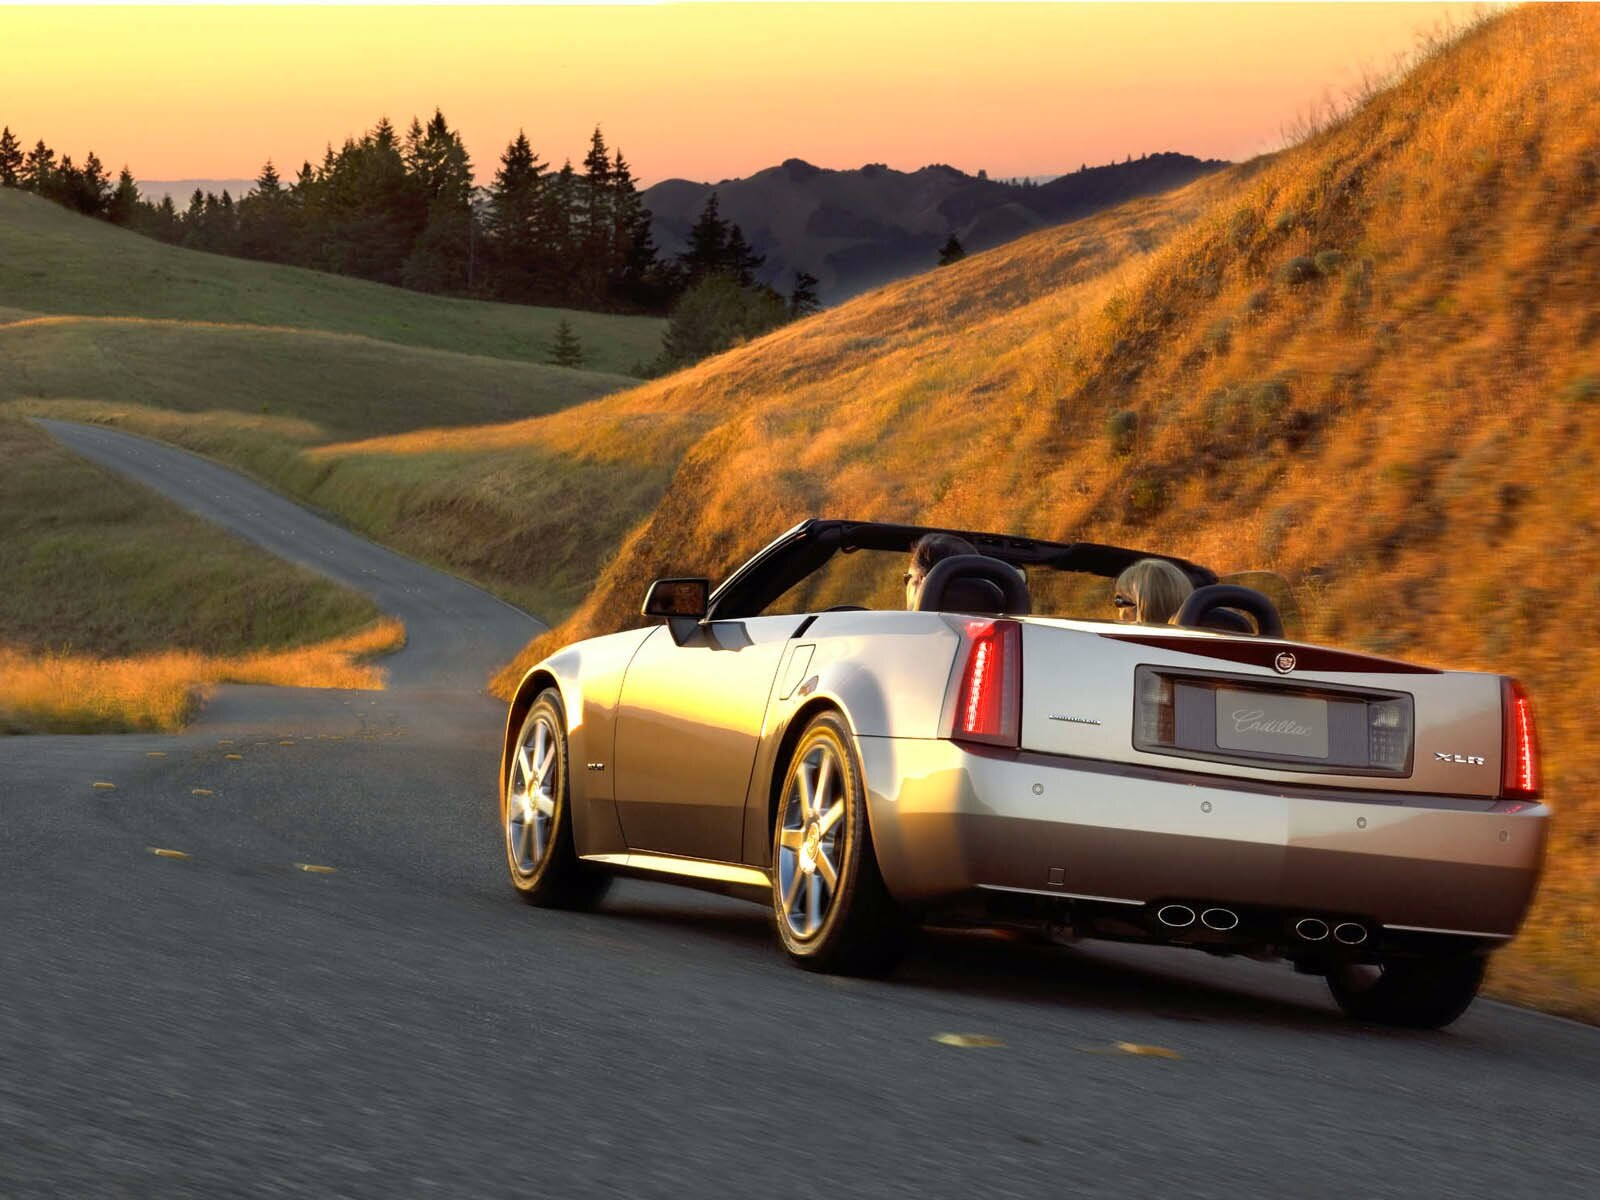 The Cadillac XLR is produced in 2-door coupe convertible body structure. The vehicle is available in two types of engines namely the 4.6 liter Northstar V8 and the 4.4 liter Northstar SC V8 models. The Cadillac XLR allows the 6-speed automatic transmission providing the wheel base of 2685 mm. The length, width and the height of the vehicle are 4514 mm, 1836 and 1280 mm respectively. The curb weight of the vehicle is 1740 kilo grams and is related to the model Chevrolet Corvette.